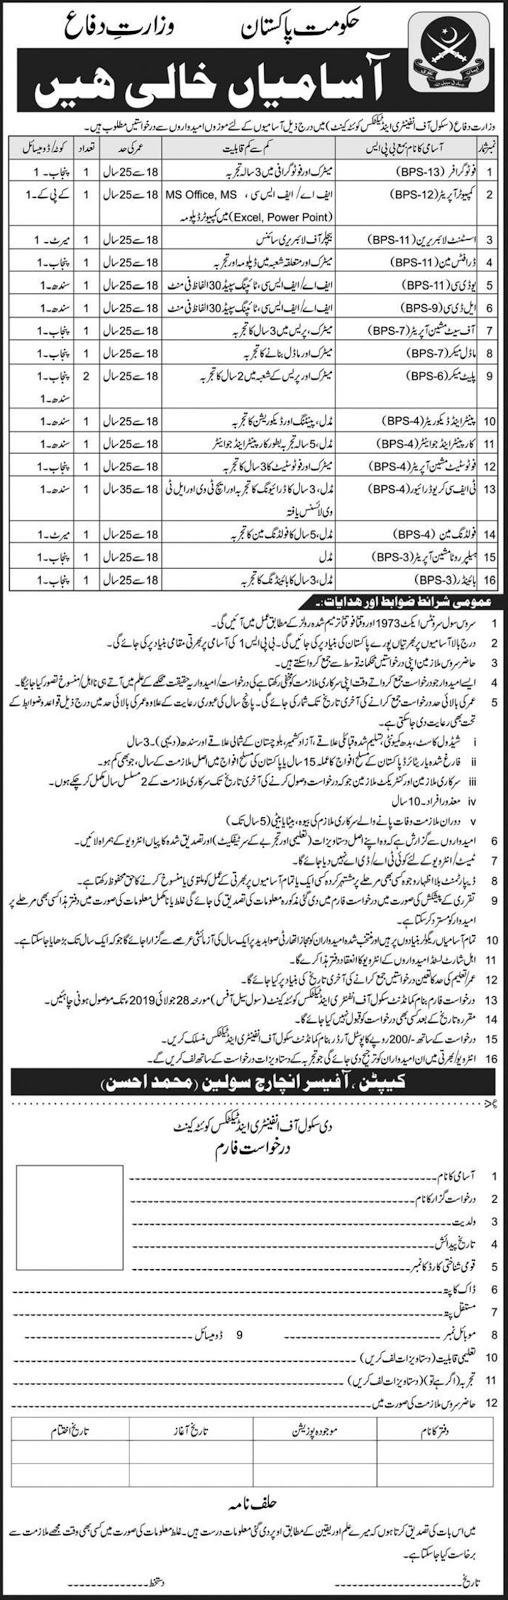 Ministry of Defence Jobs 2019 School of Infantry & Tactics Pakistan Army Latest